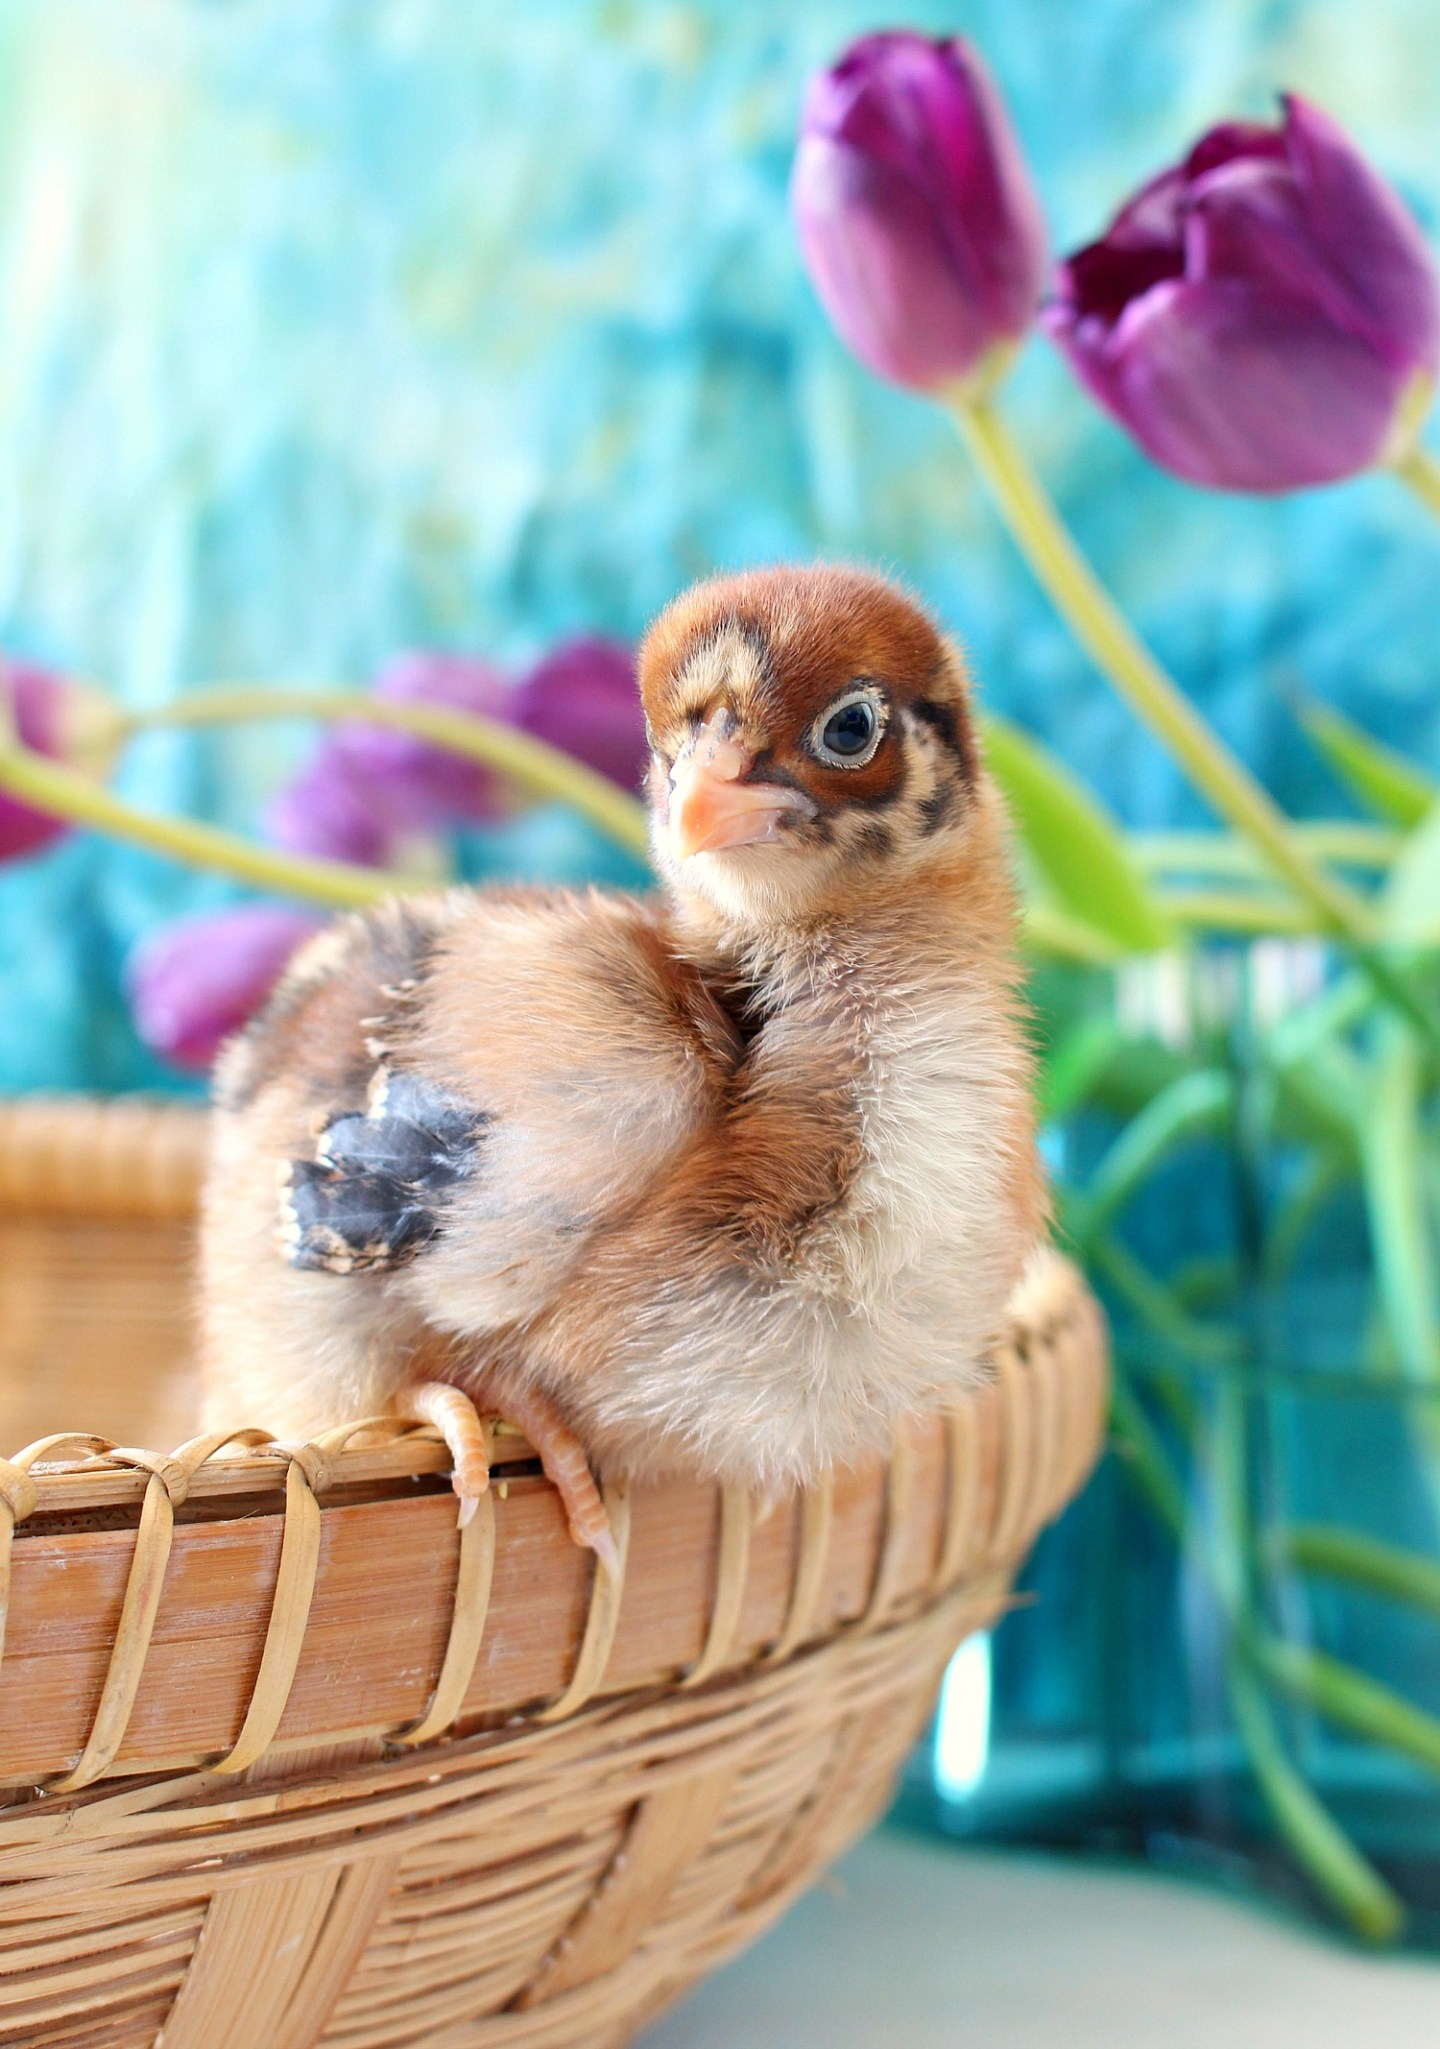 Photos of Spring Chicks Recently Hatched